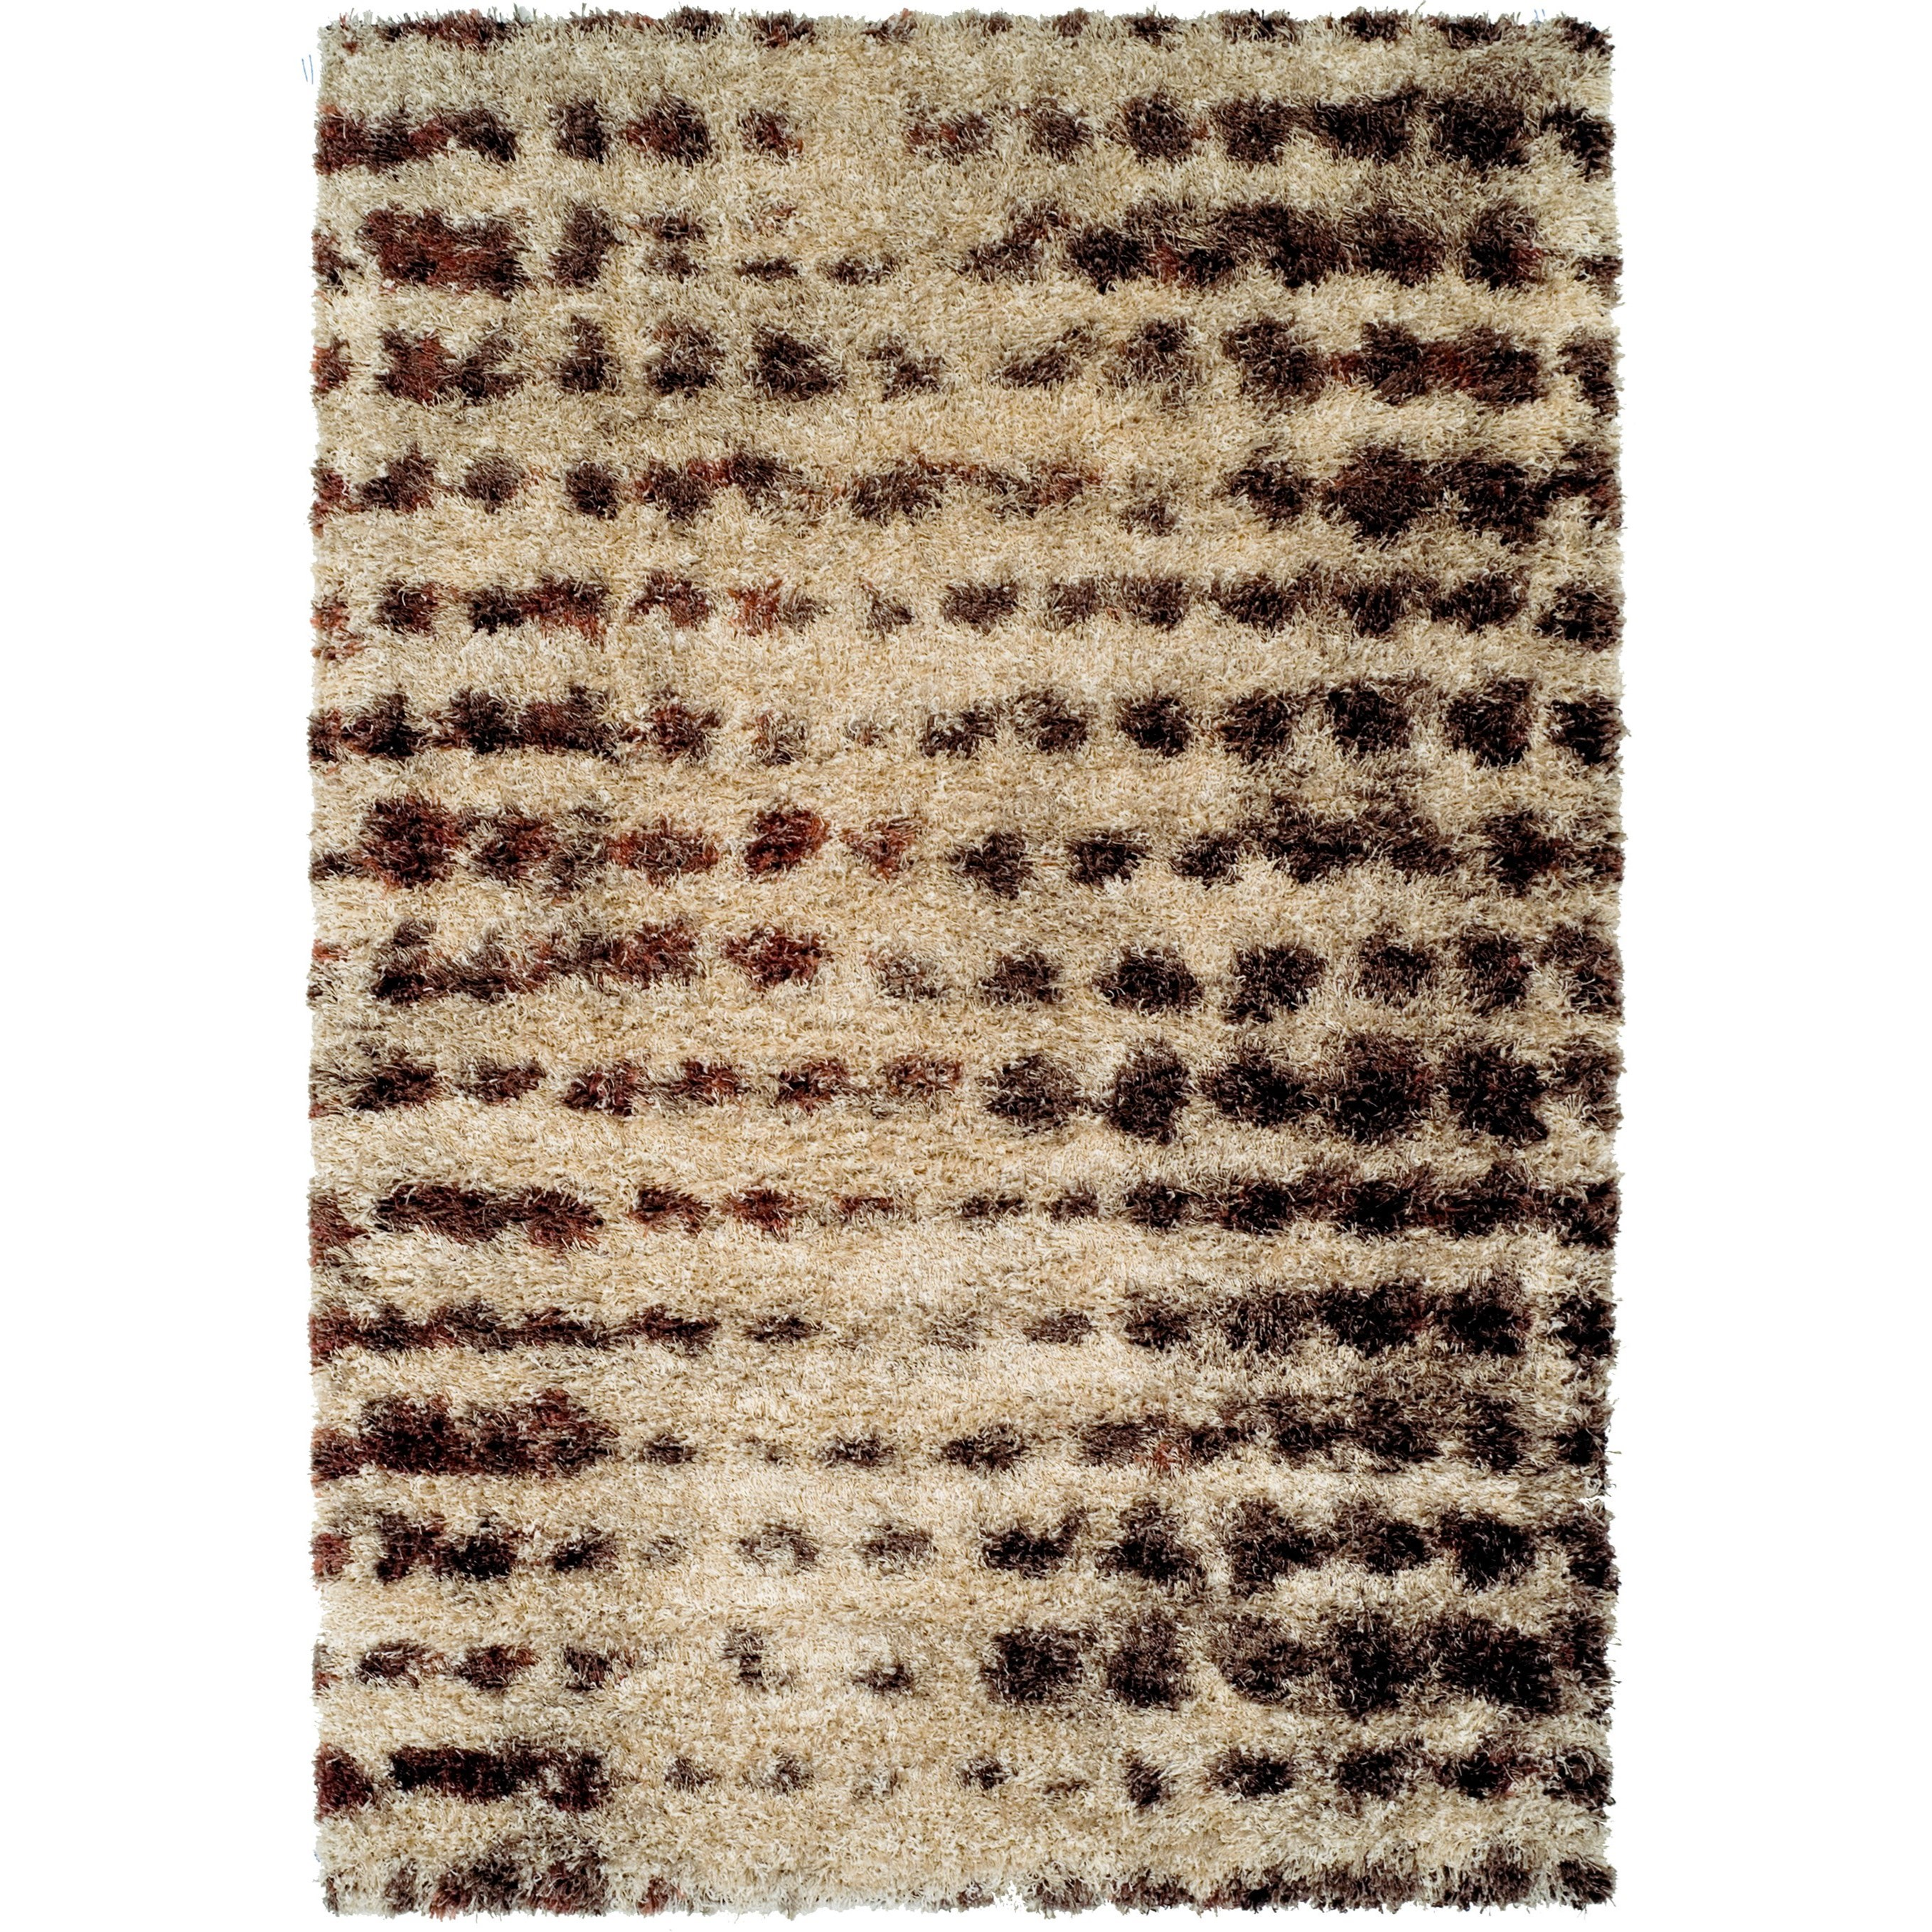 """Arturro Sand 7'10""""X10'7"""" Rug by Dalyn at Jacksonville Furniture Mart"""